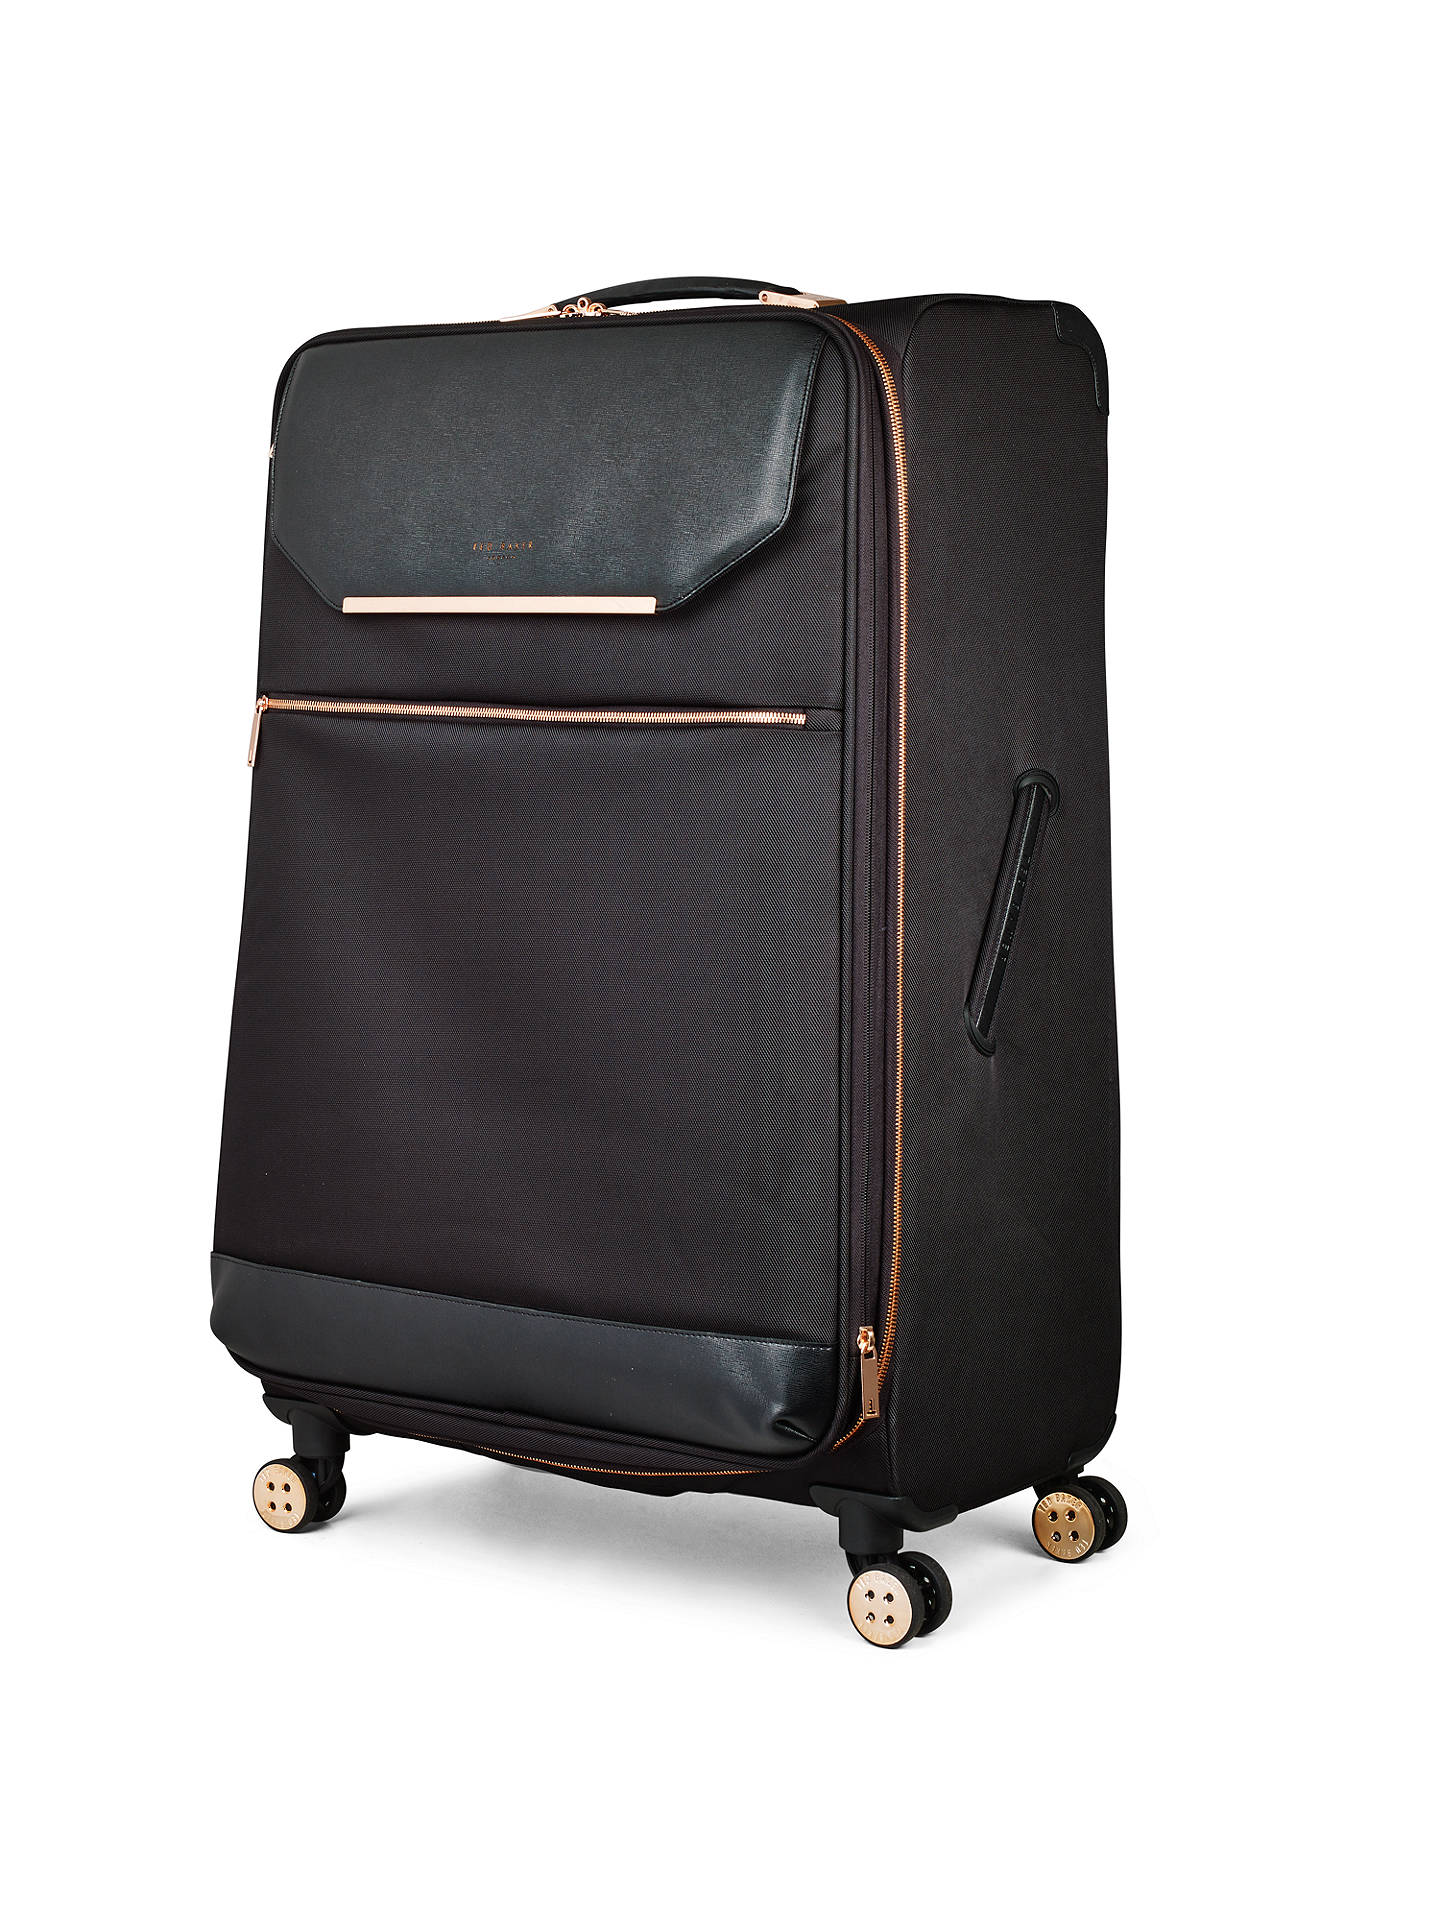 ccaaaac76 Buy Ted Baker Soft Albany 83cm 4-Wheel Suitcase